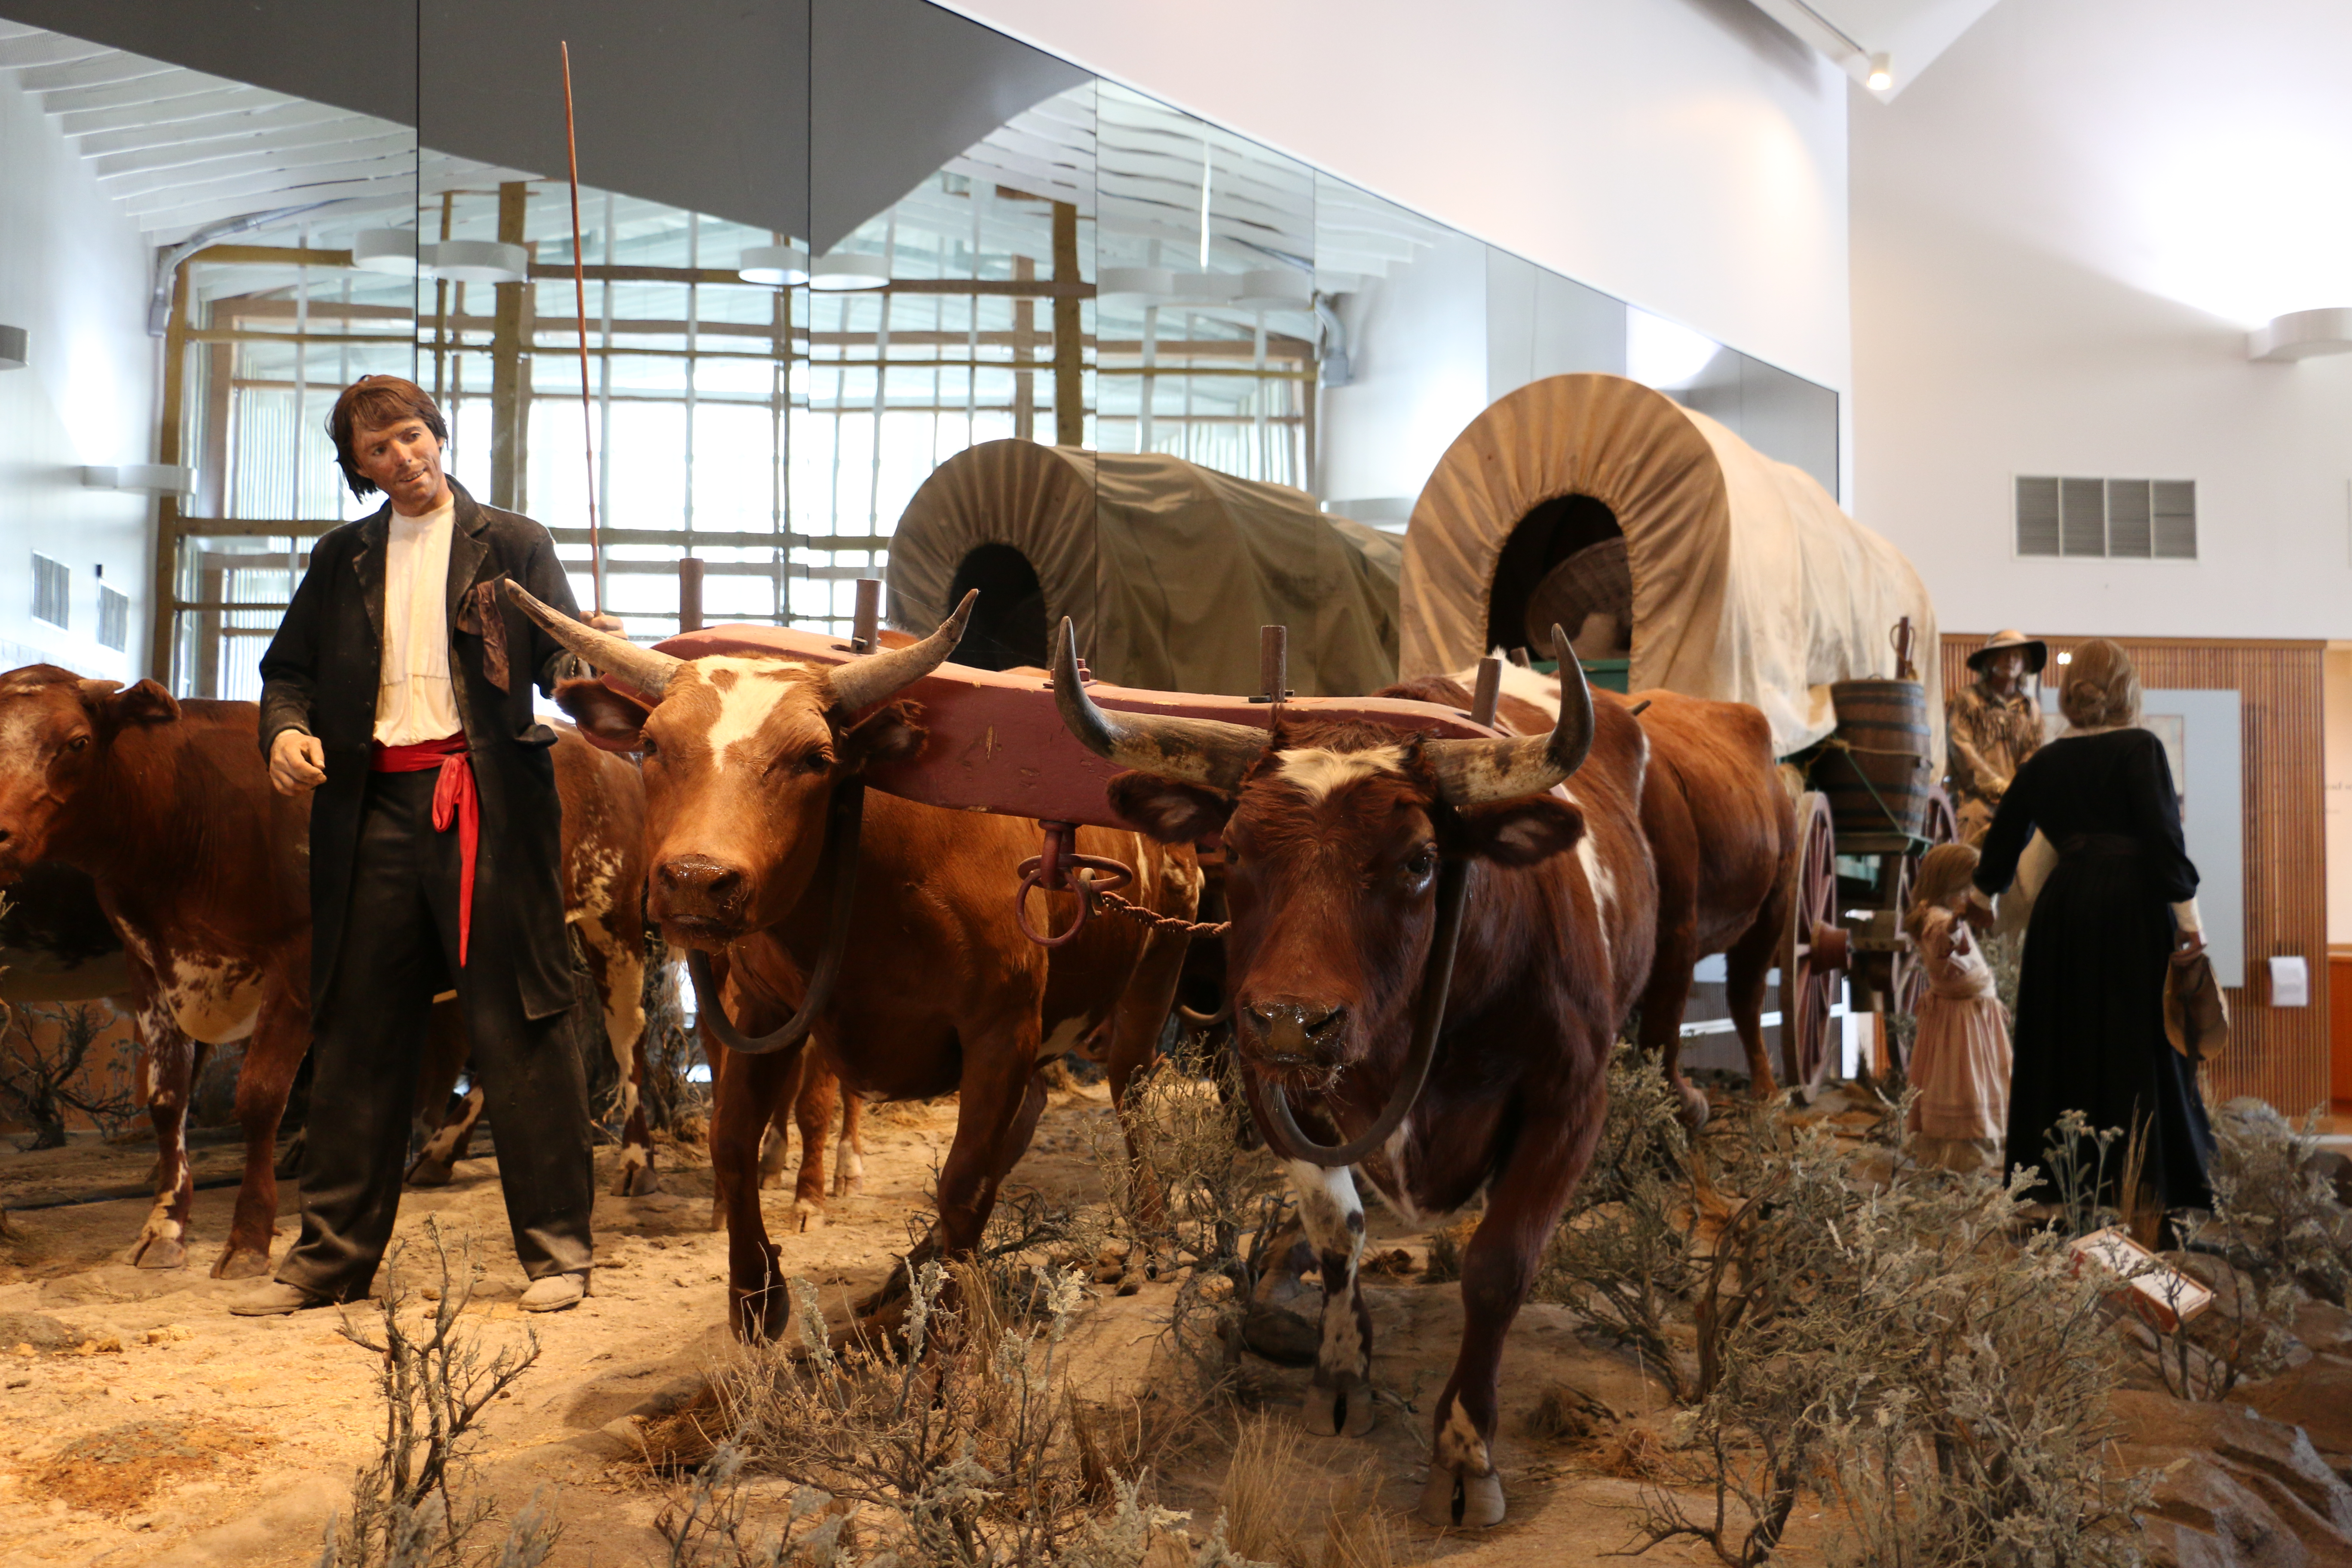 Displays in the National Historic Oregon Trail Interpretive Center tell the story of the pioneers who crossed the country to settle in Oregon. Photo: Wikipedia Commons